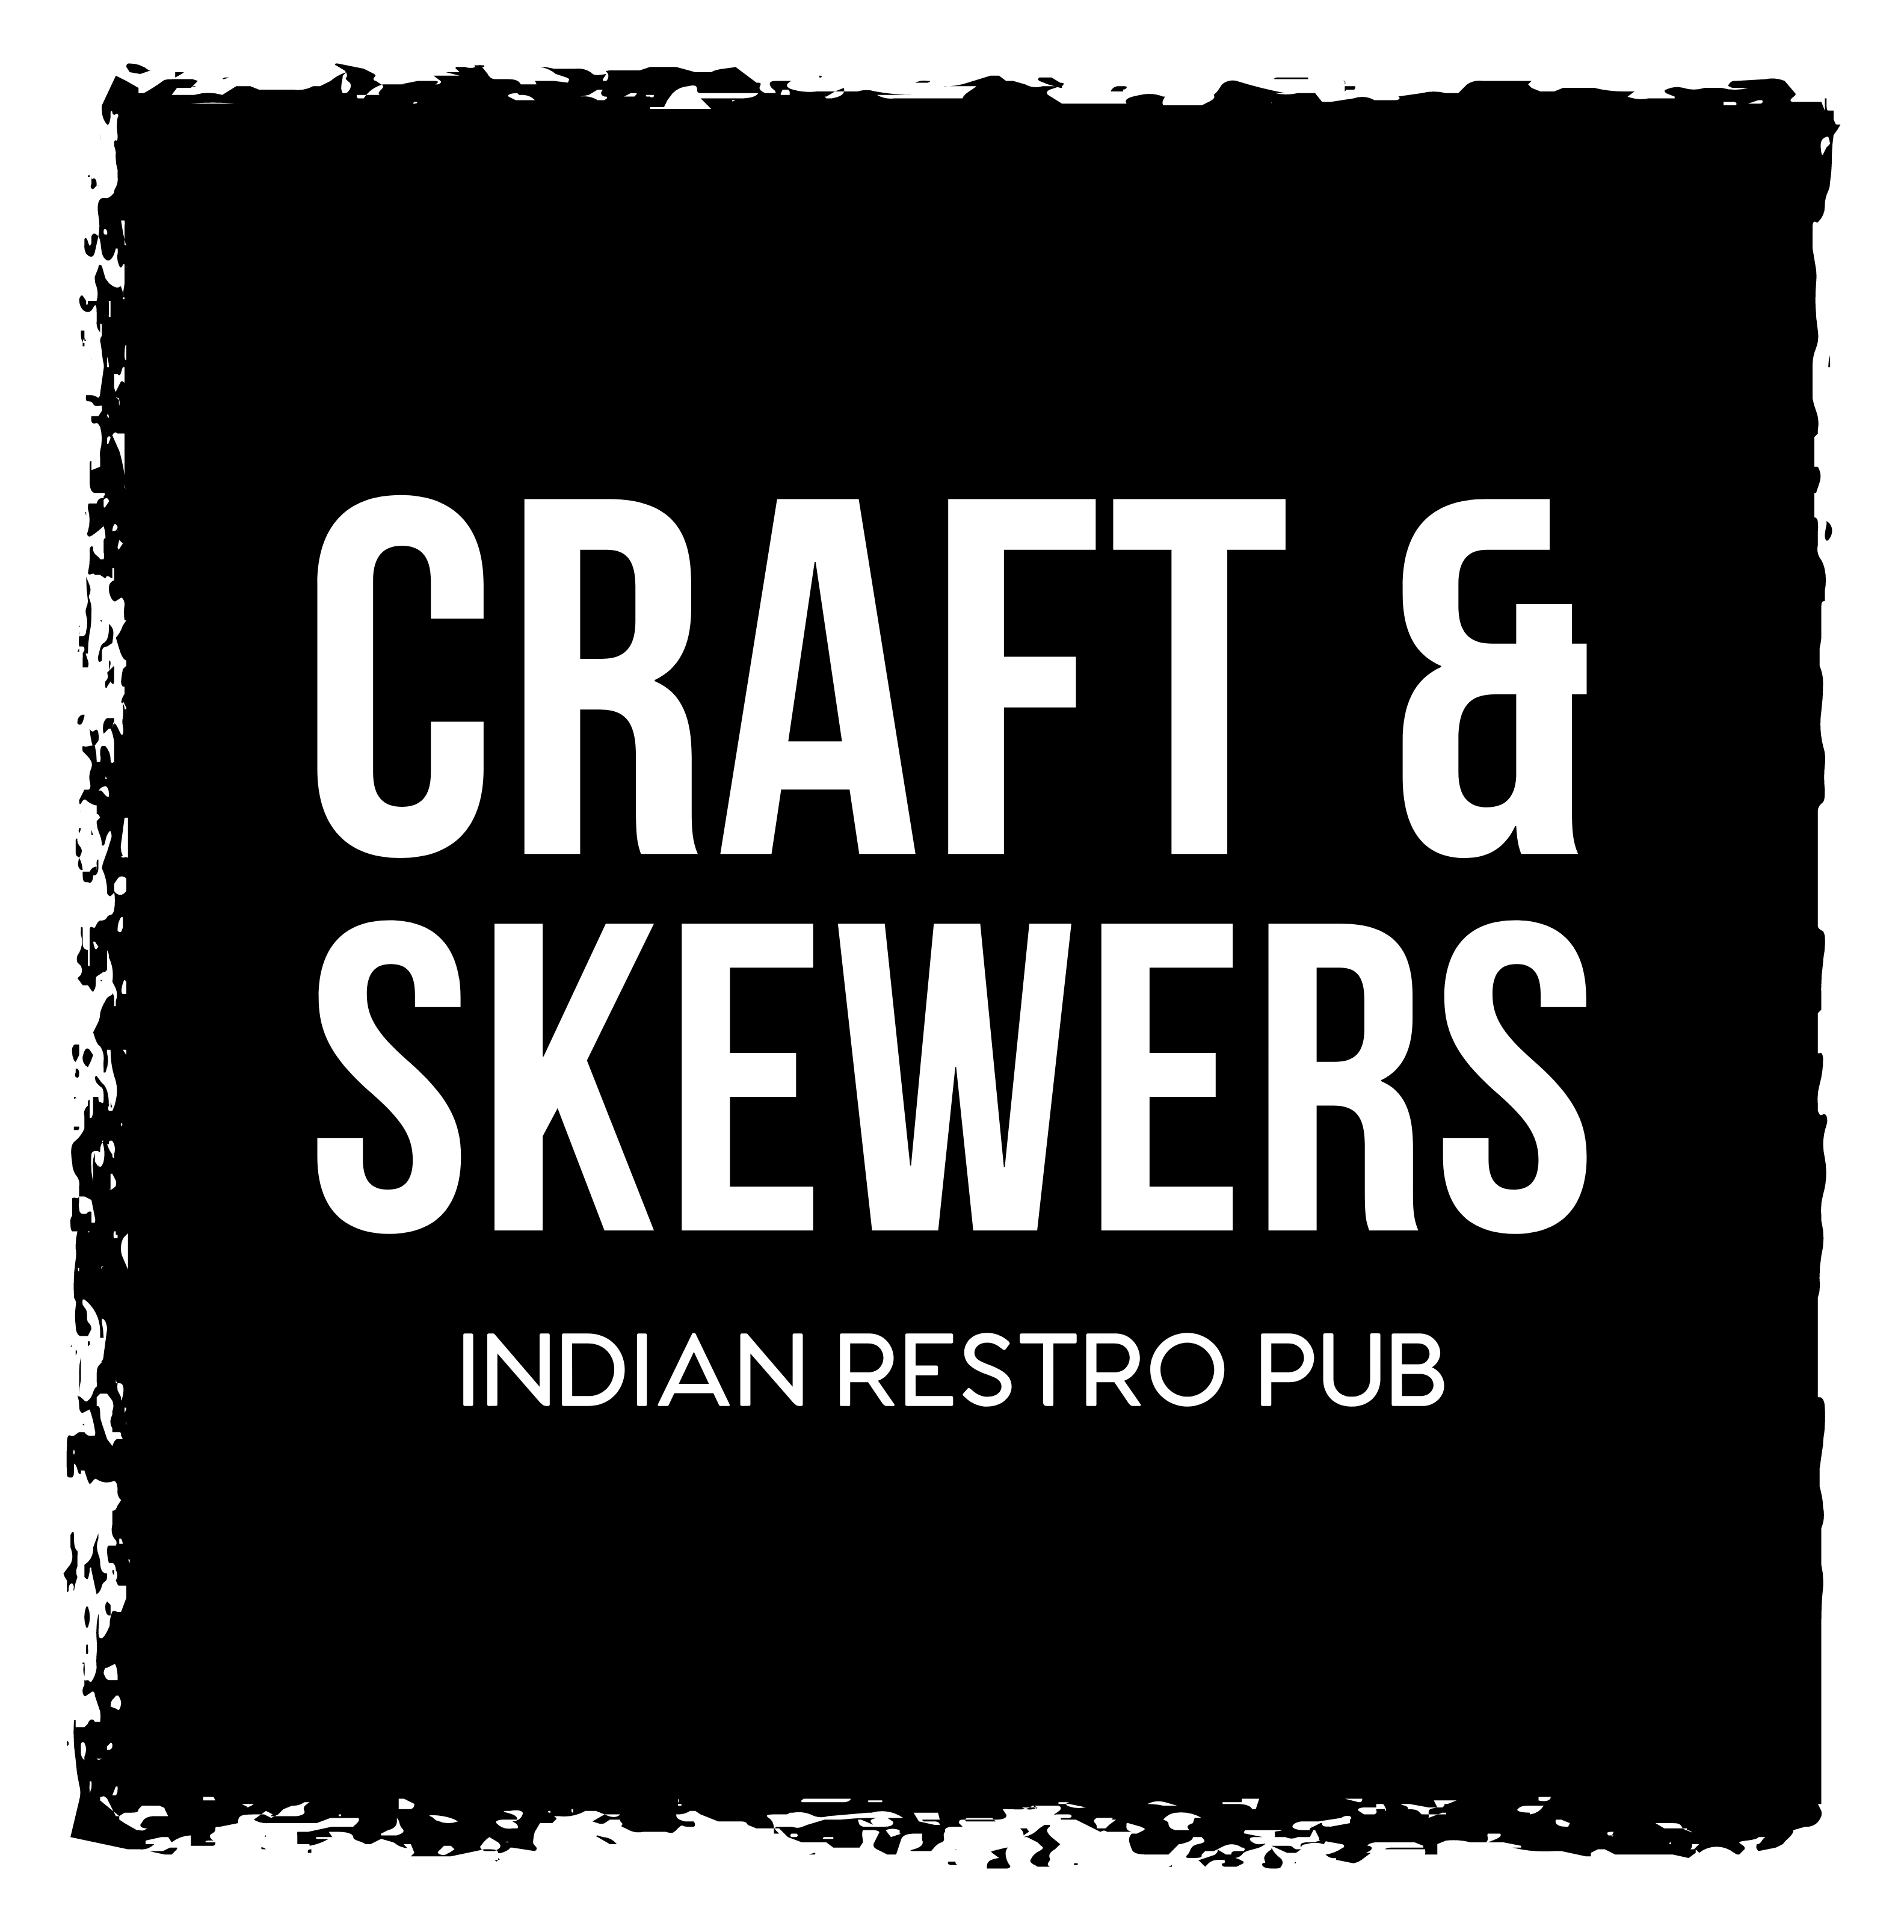 Craft & Skewers